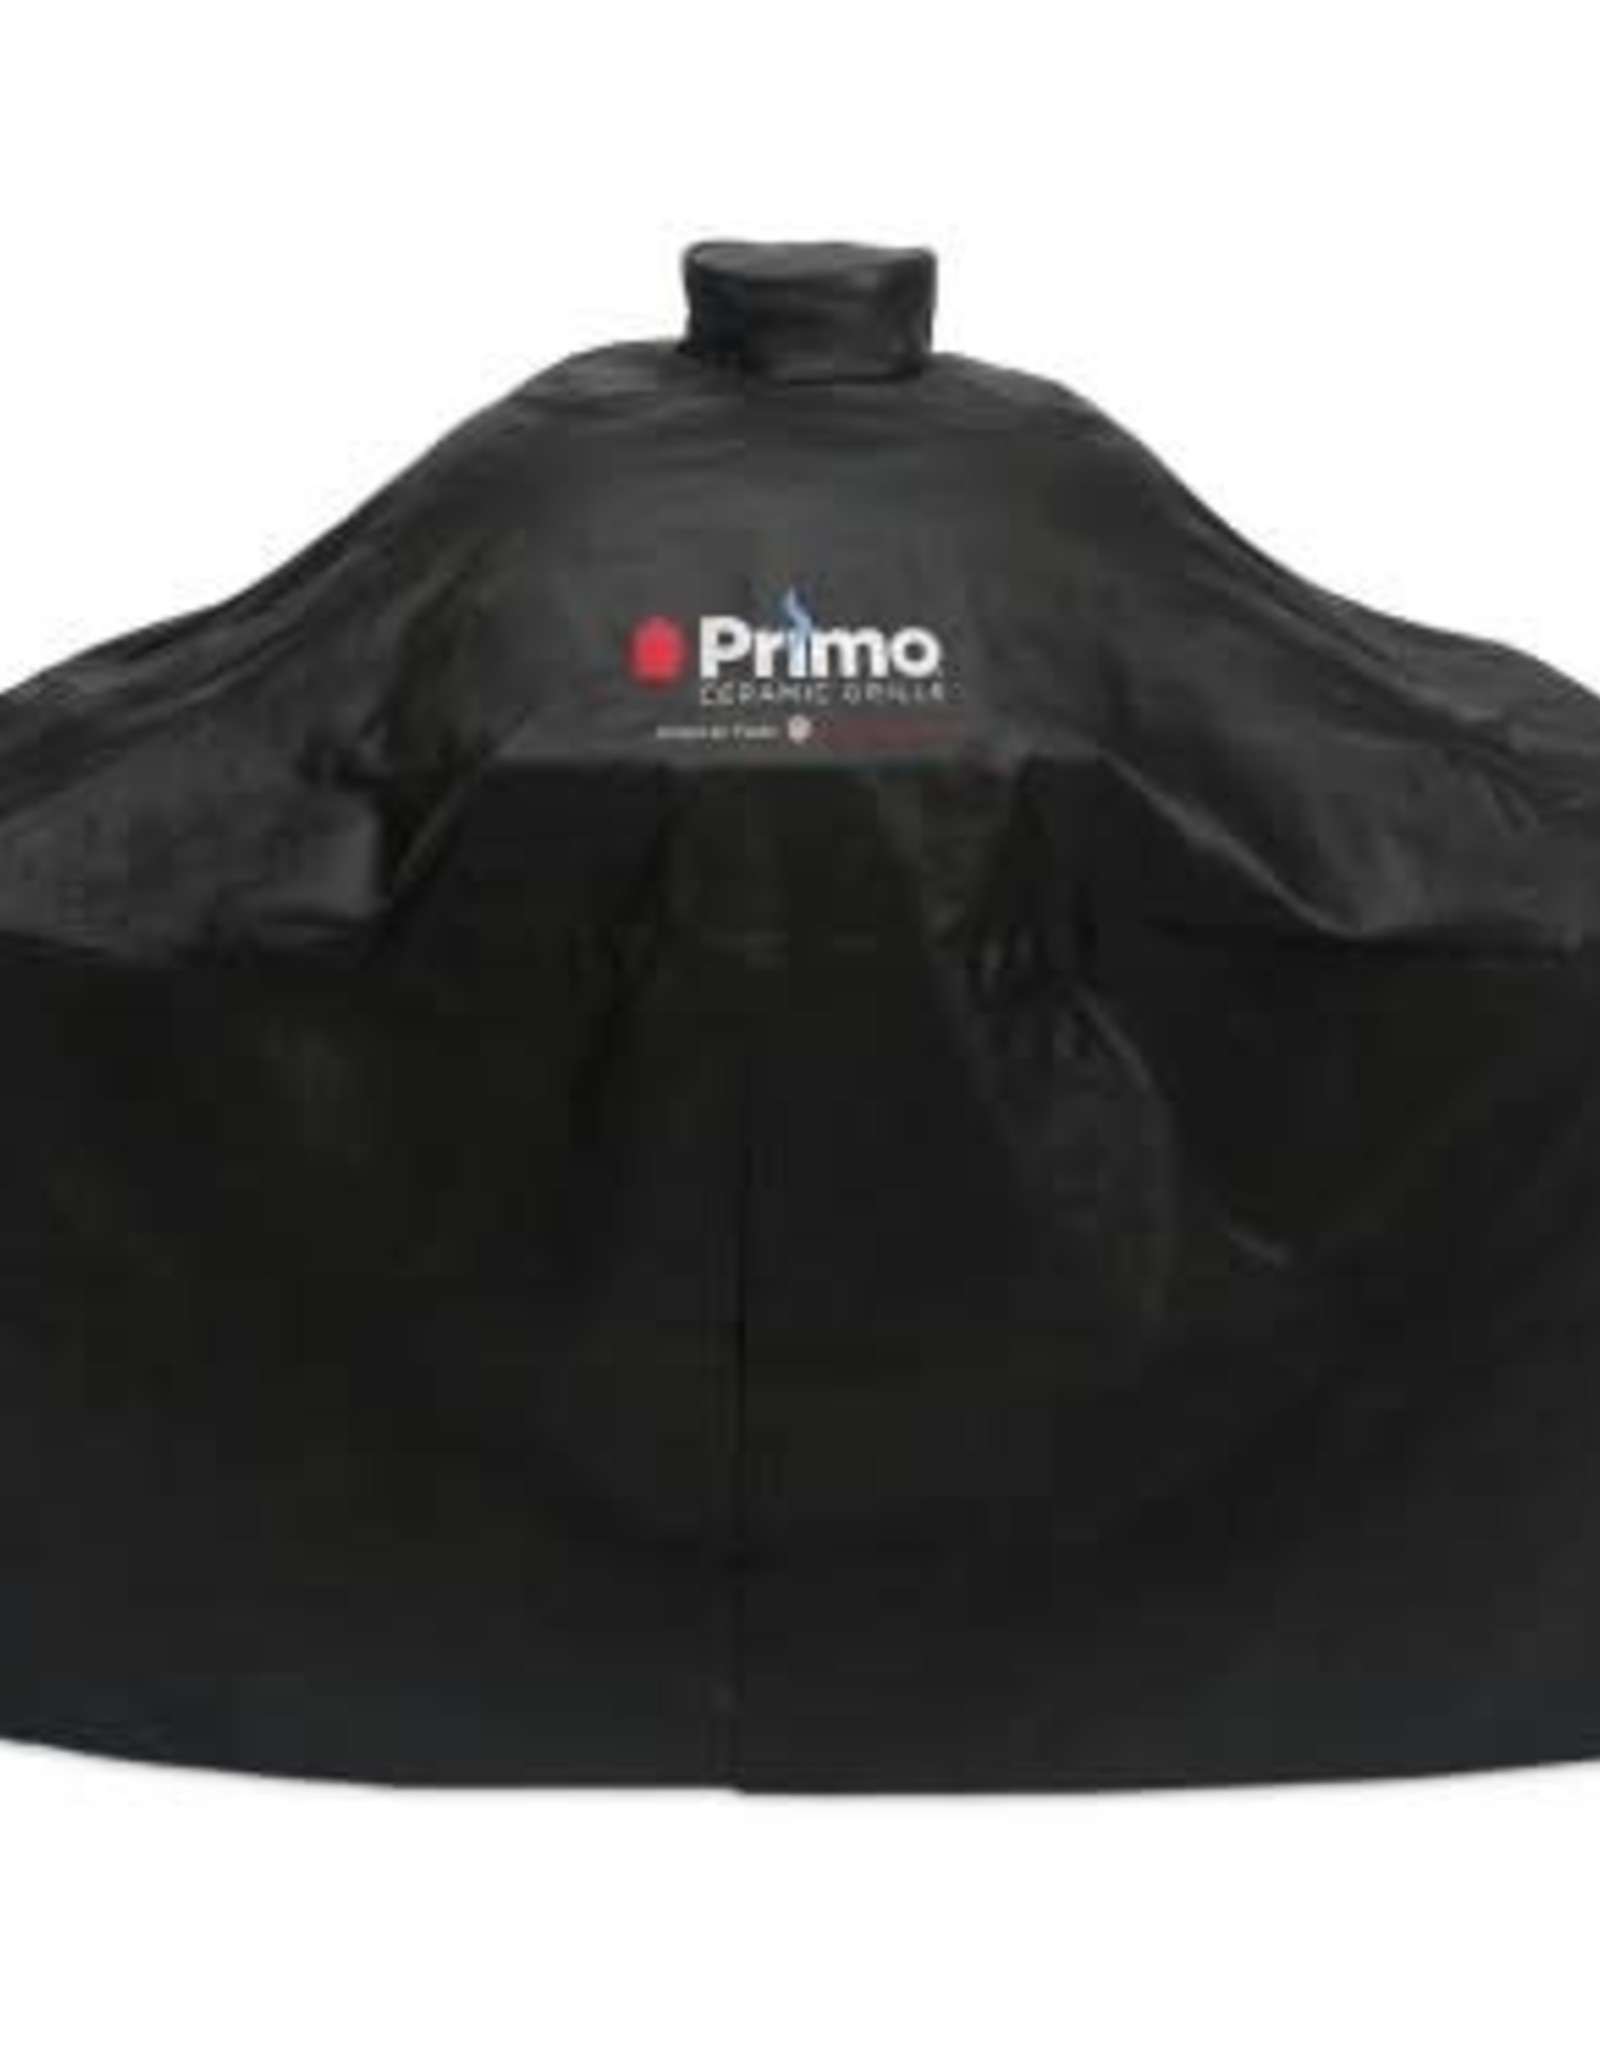 Primo Ceramic Grills Primo Vinyl Cover for Oval XL 400 in SS Cart or Compact Cypress Table, Oval LG 300 in SS Cart, & Oval JR 200 In Cypress Table #414